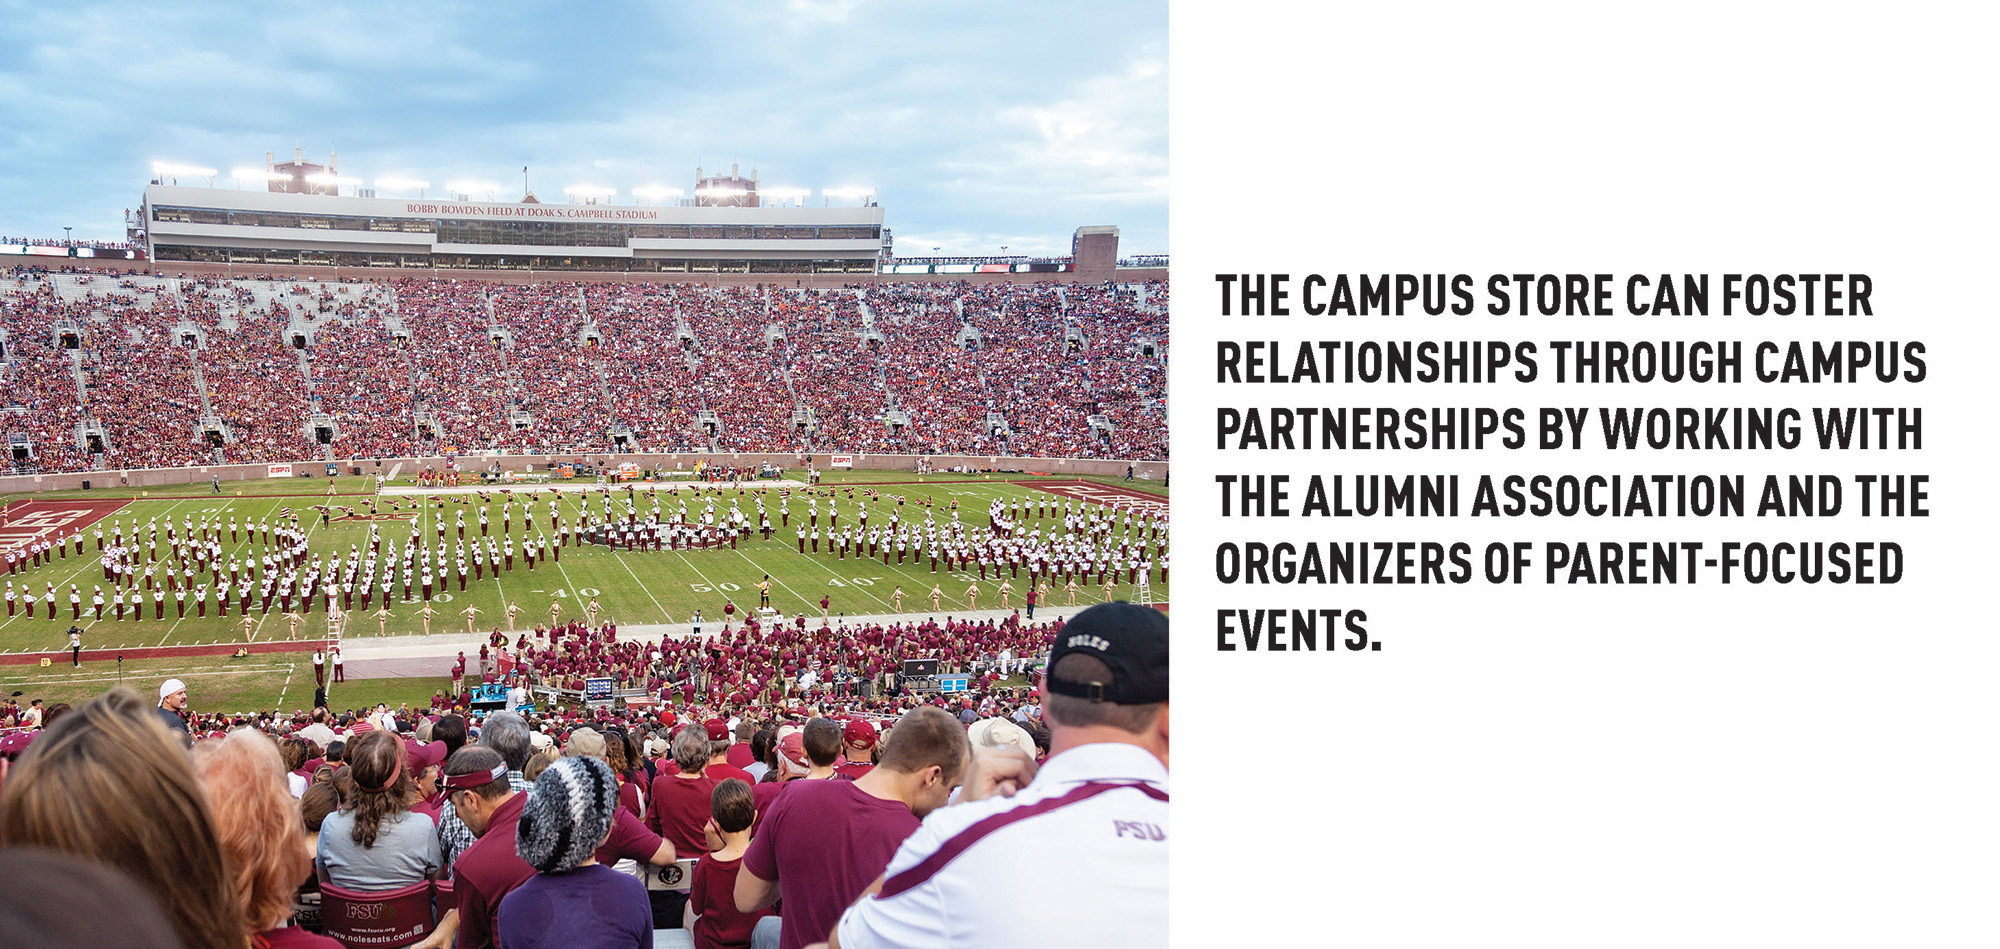 Campus partnerships